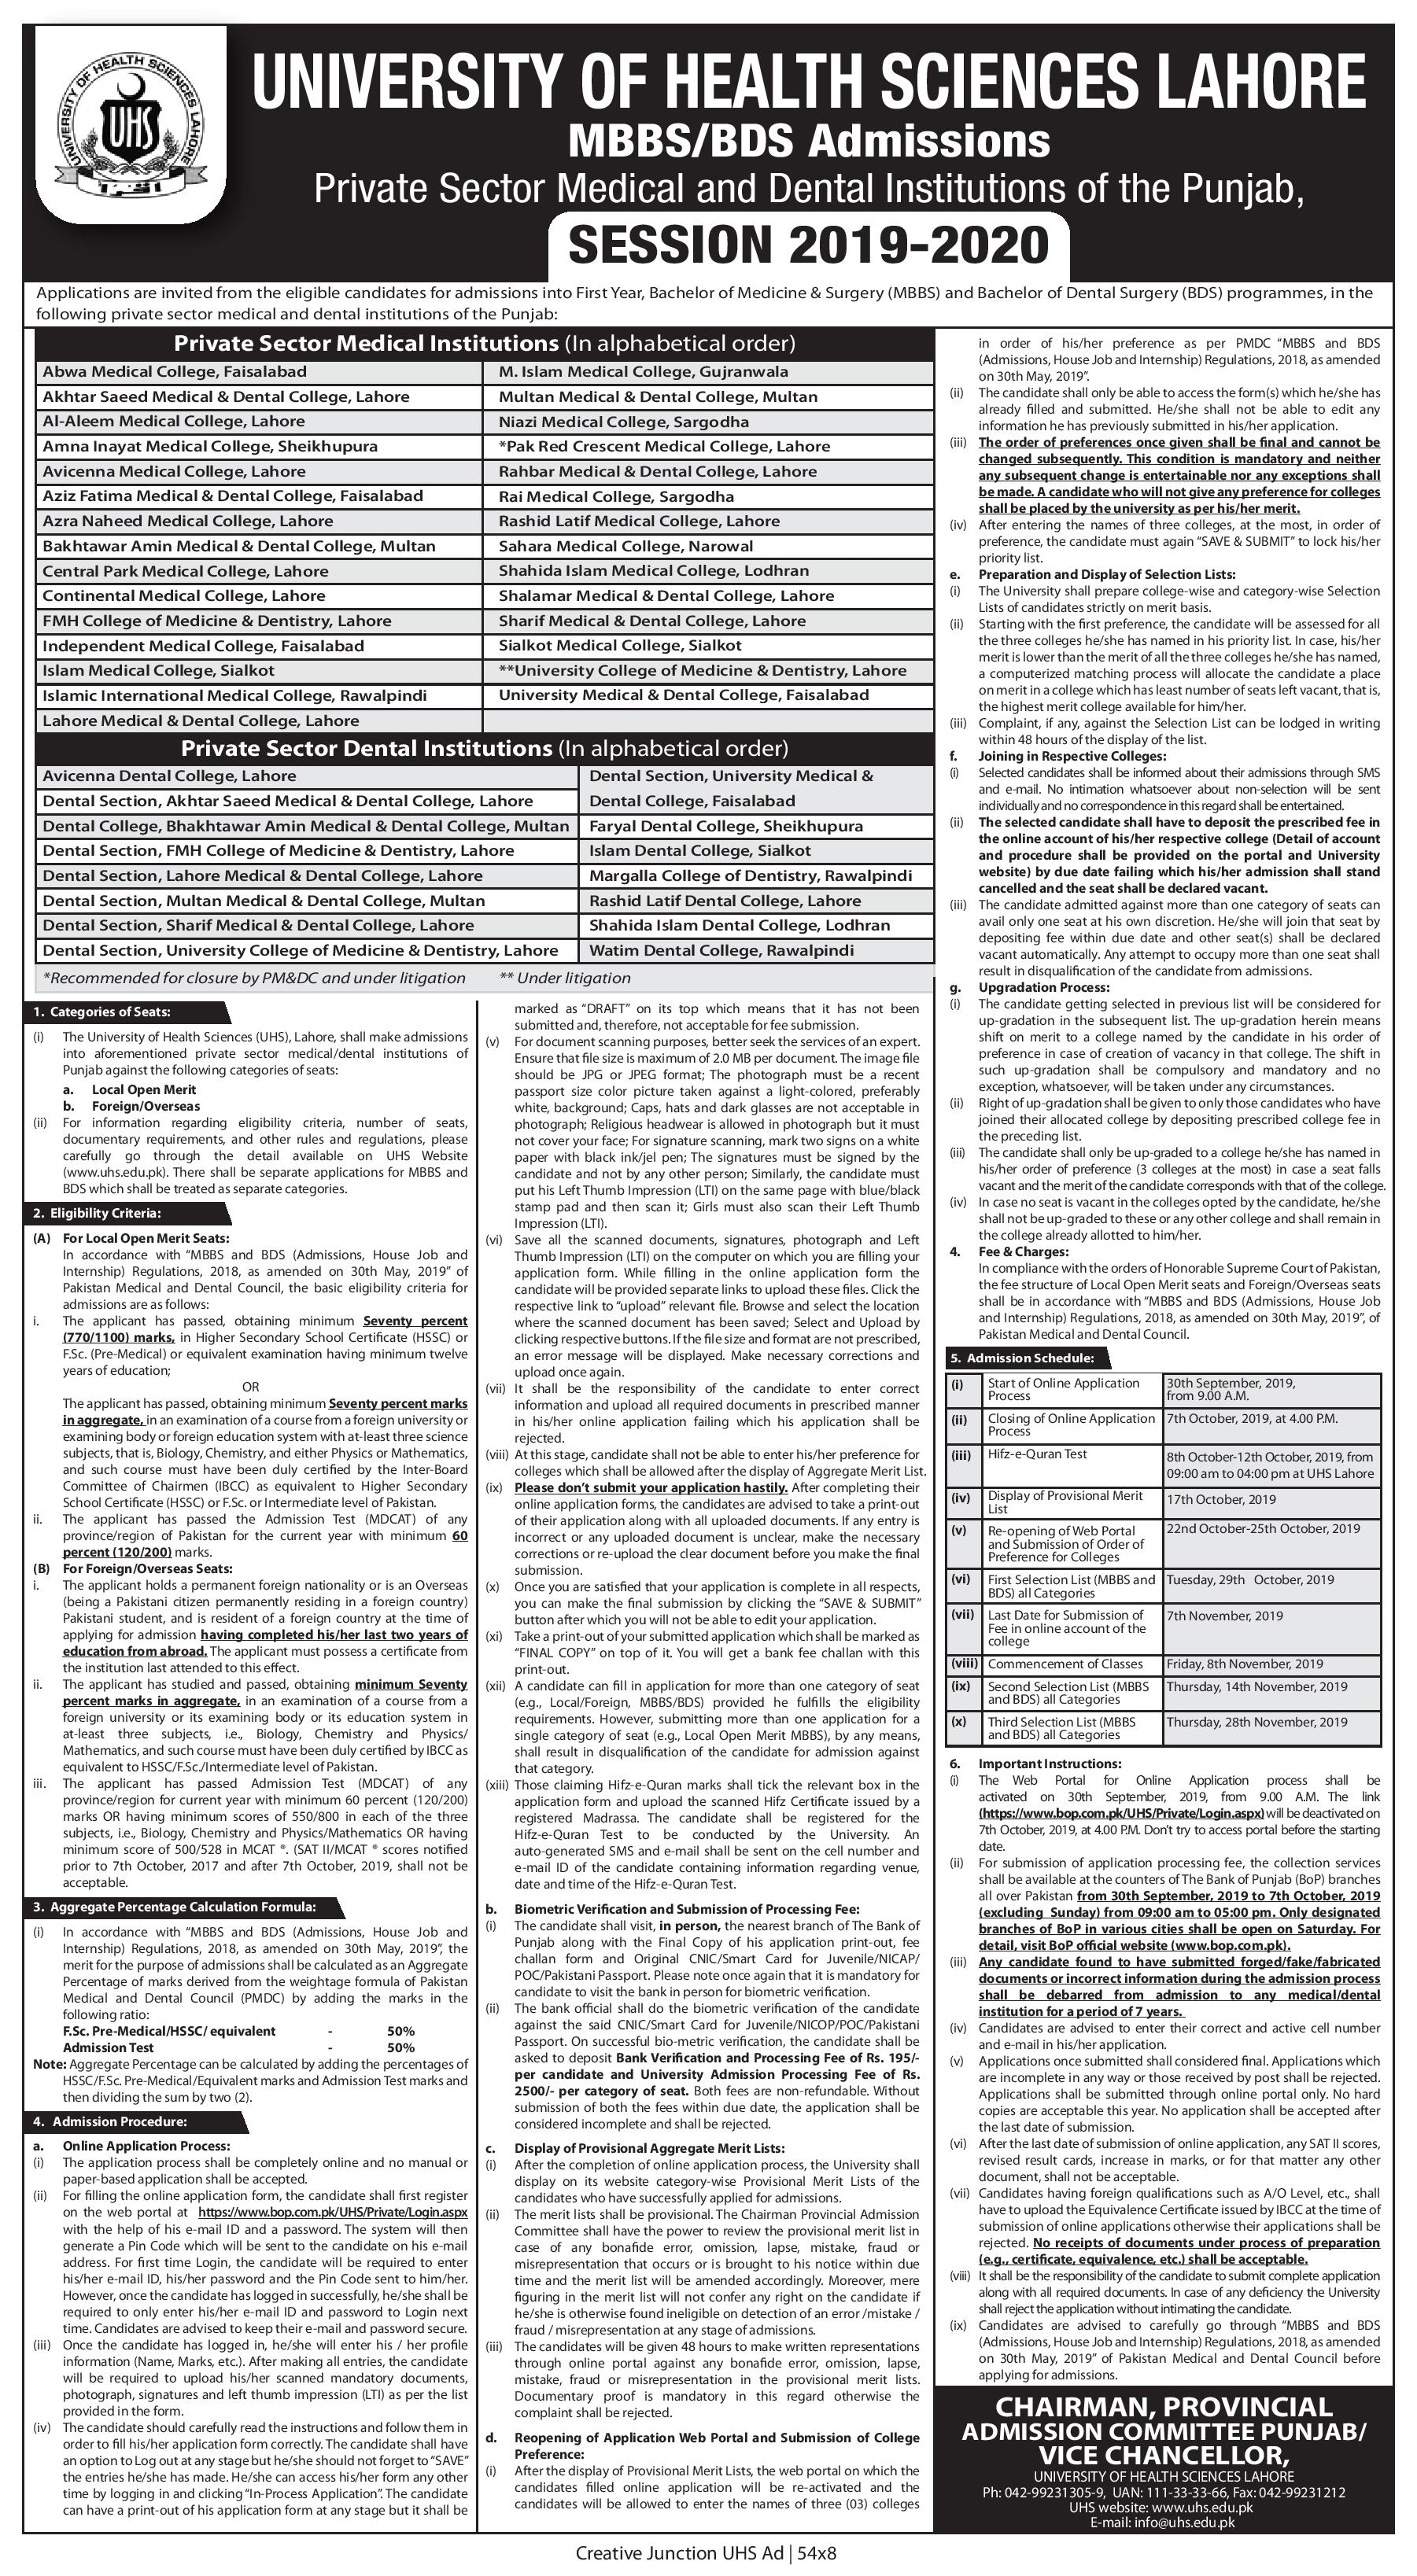 Rai Medical College Sargodha MBBS Admission 2019